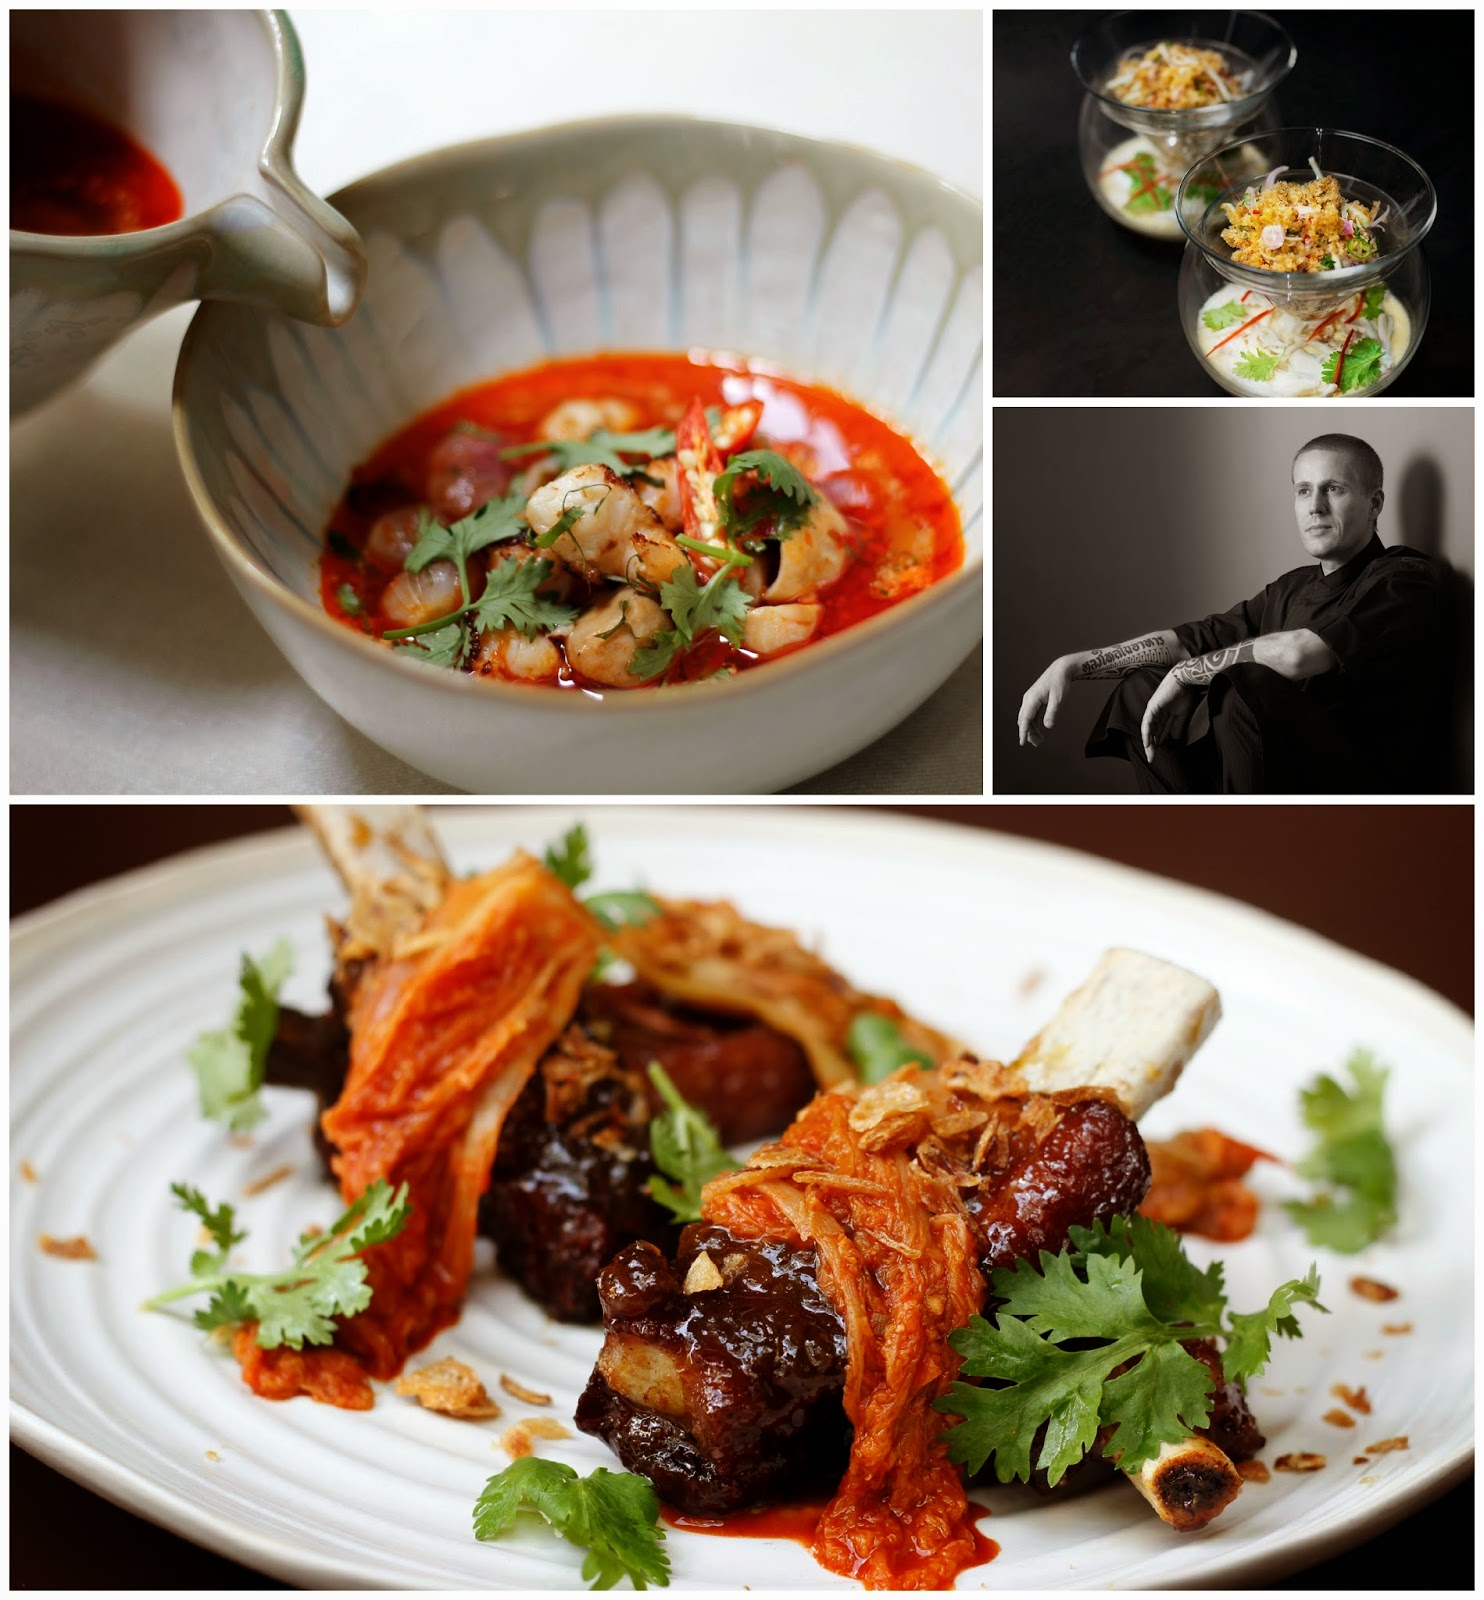 At the Benjarong Royal Thai Cuisine restaurant, chef Morten's interpretation of Thai food is an innovative approach by combining modern techniques with traditional flavors producing contemporary dishes that are distinctly Thai at heart.